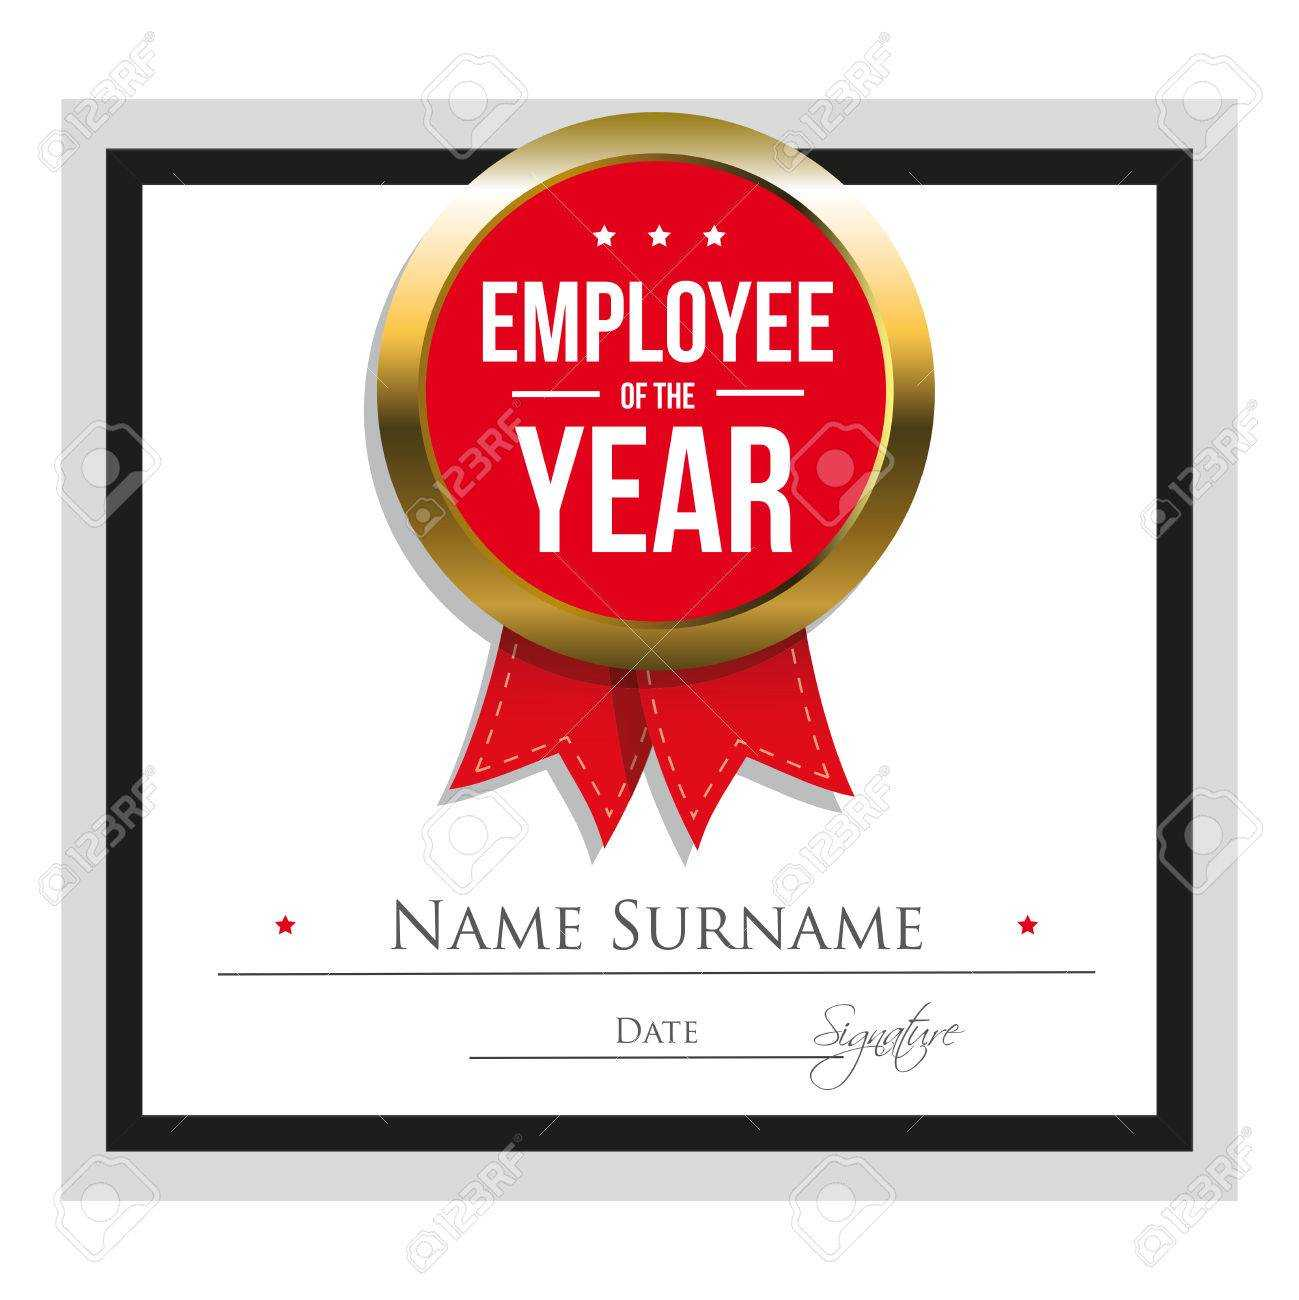 Employee Of The Year Certificate Template With Employee Of The Year Certificate Template Free